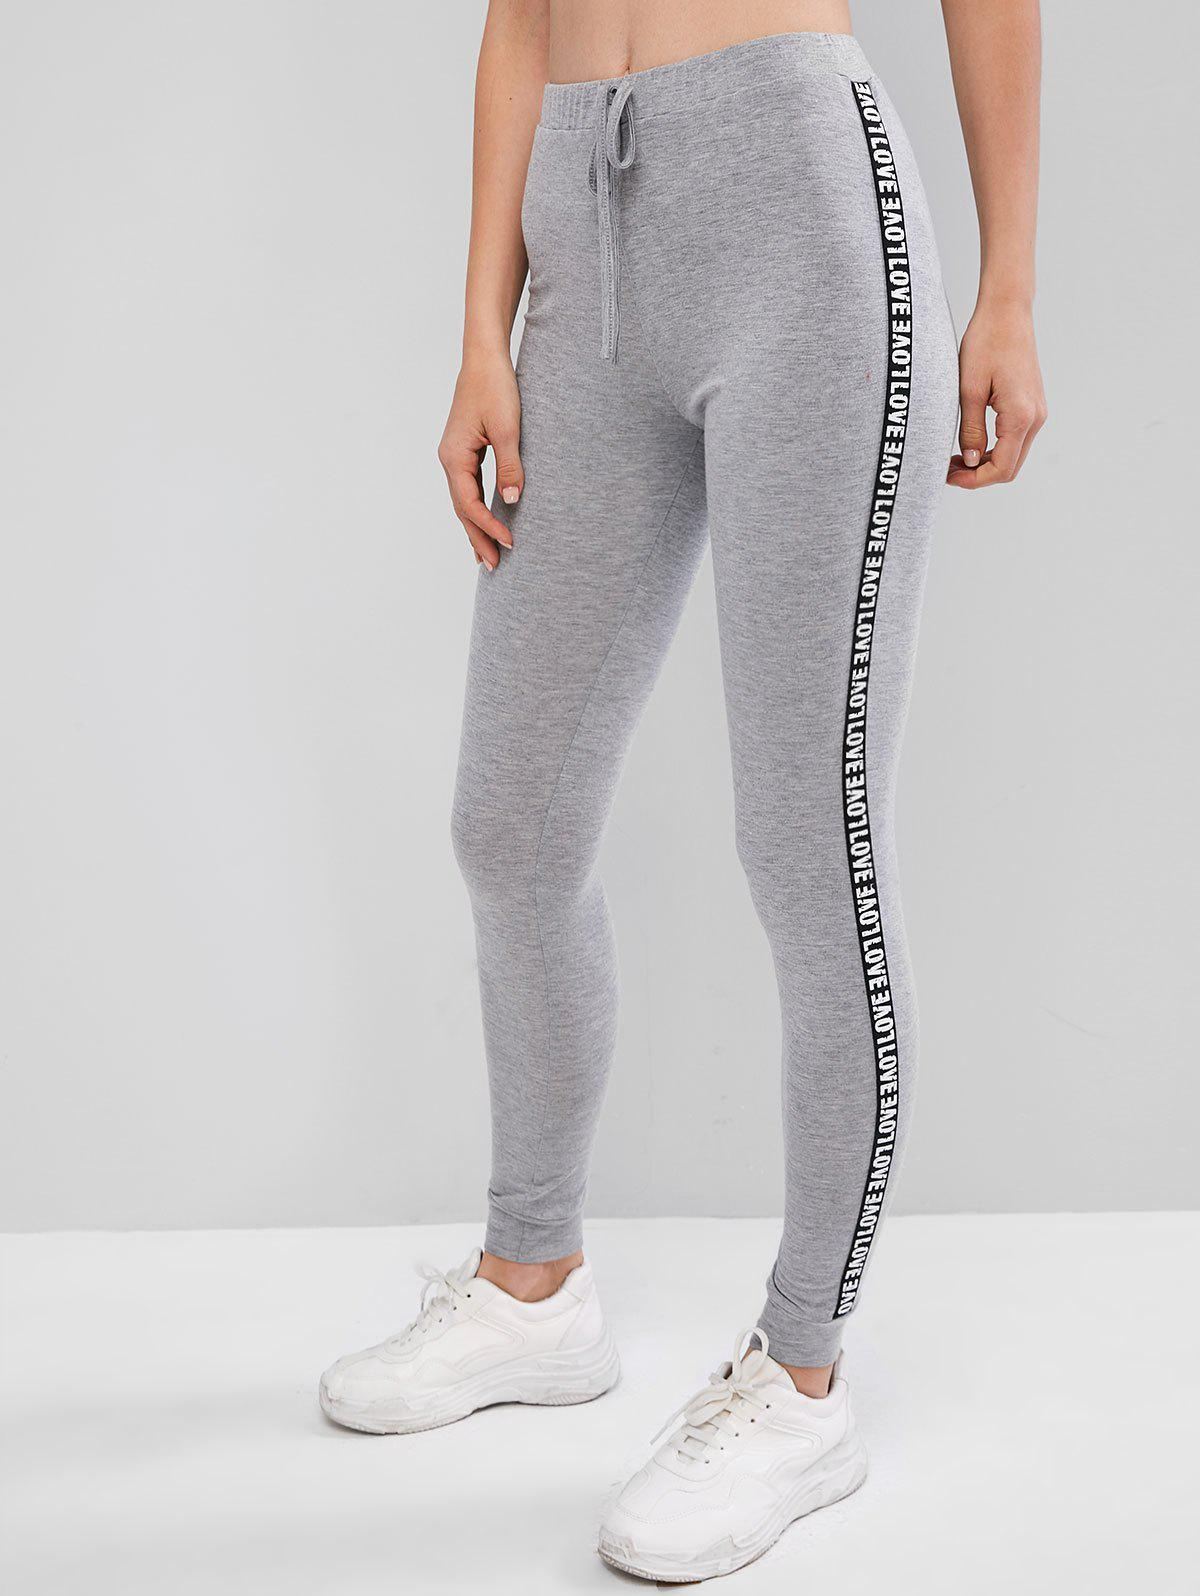 Latest Letter Patched Heathered High Waist Leggings